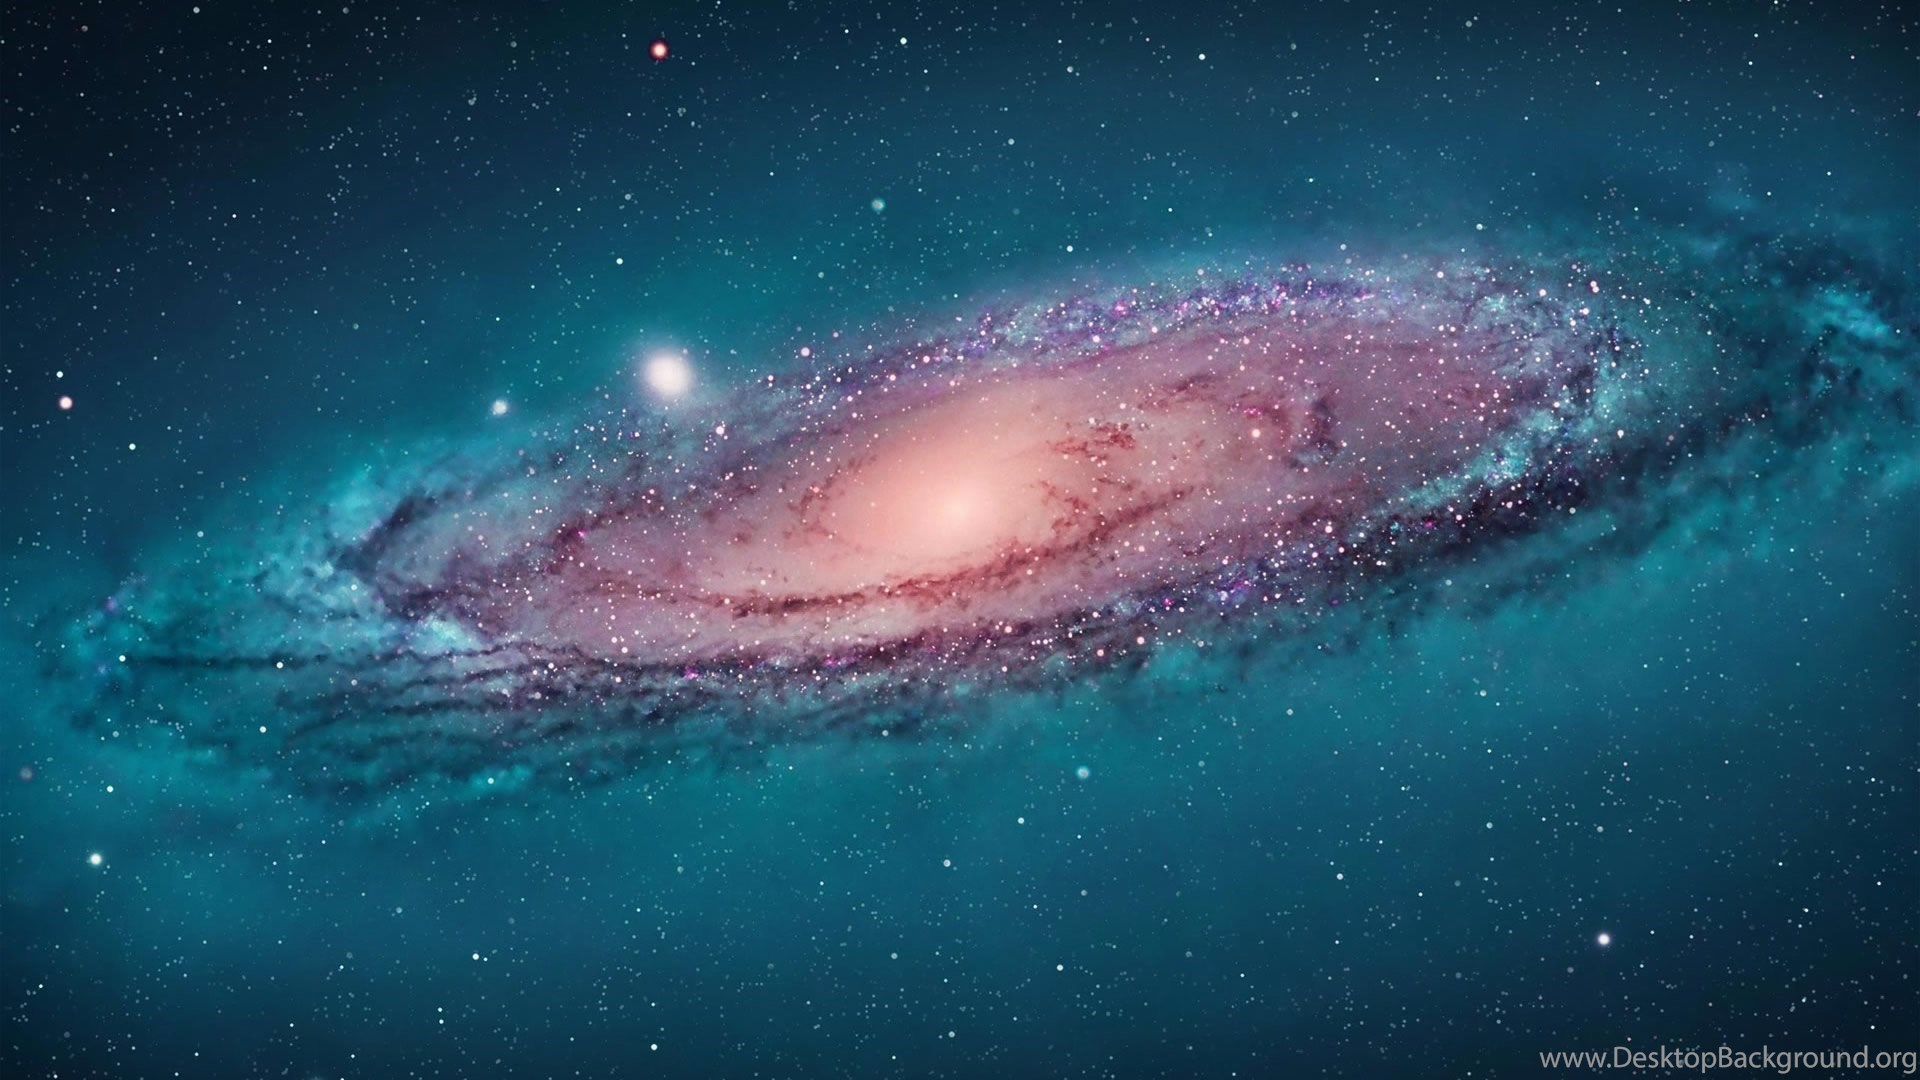 Live Space Wallpaper For Computer: Galaxy And Space Windows 10 Wallpapers Desktop